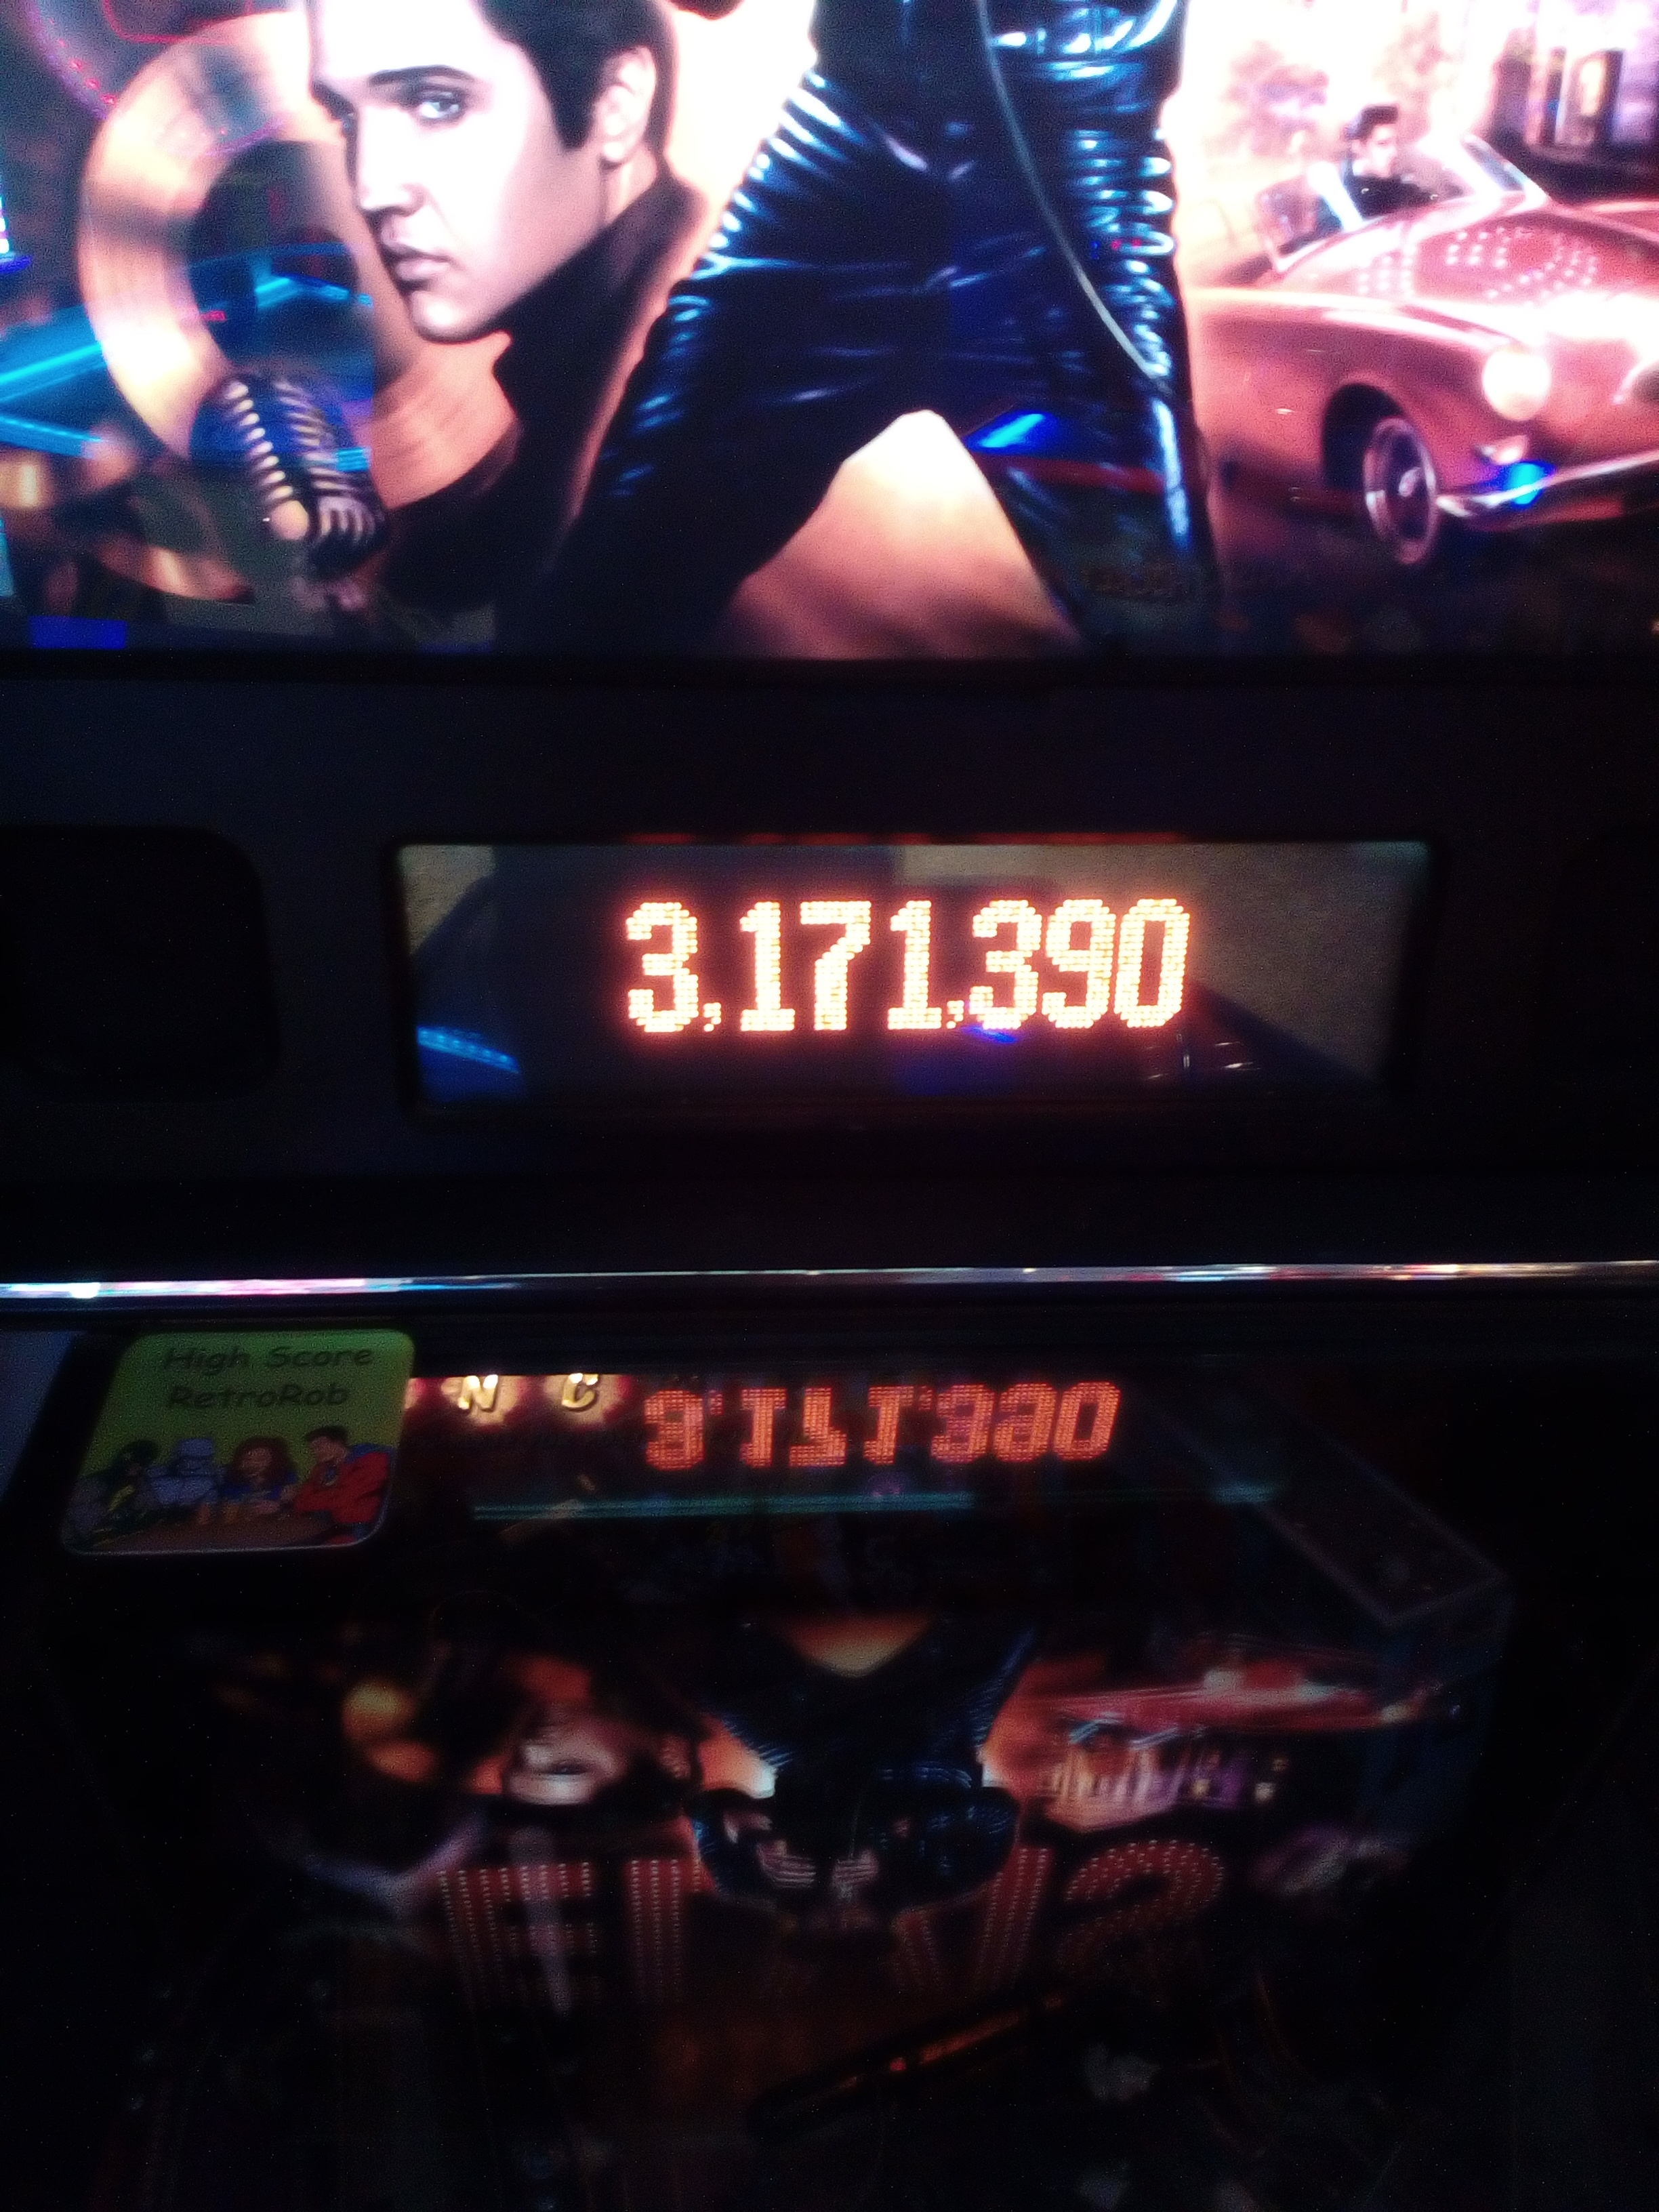 RetroRob: Elvis (Pinball: 3 Balls) 3,171,390 points on 2018-08-02 13:42:25